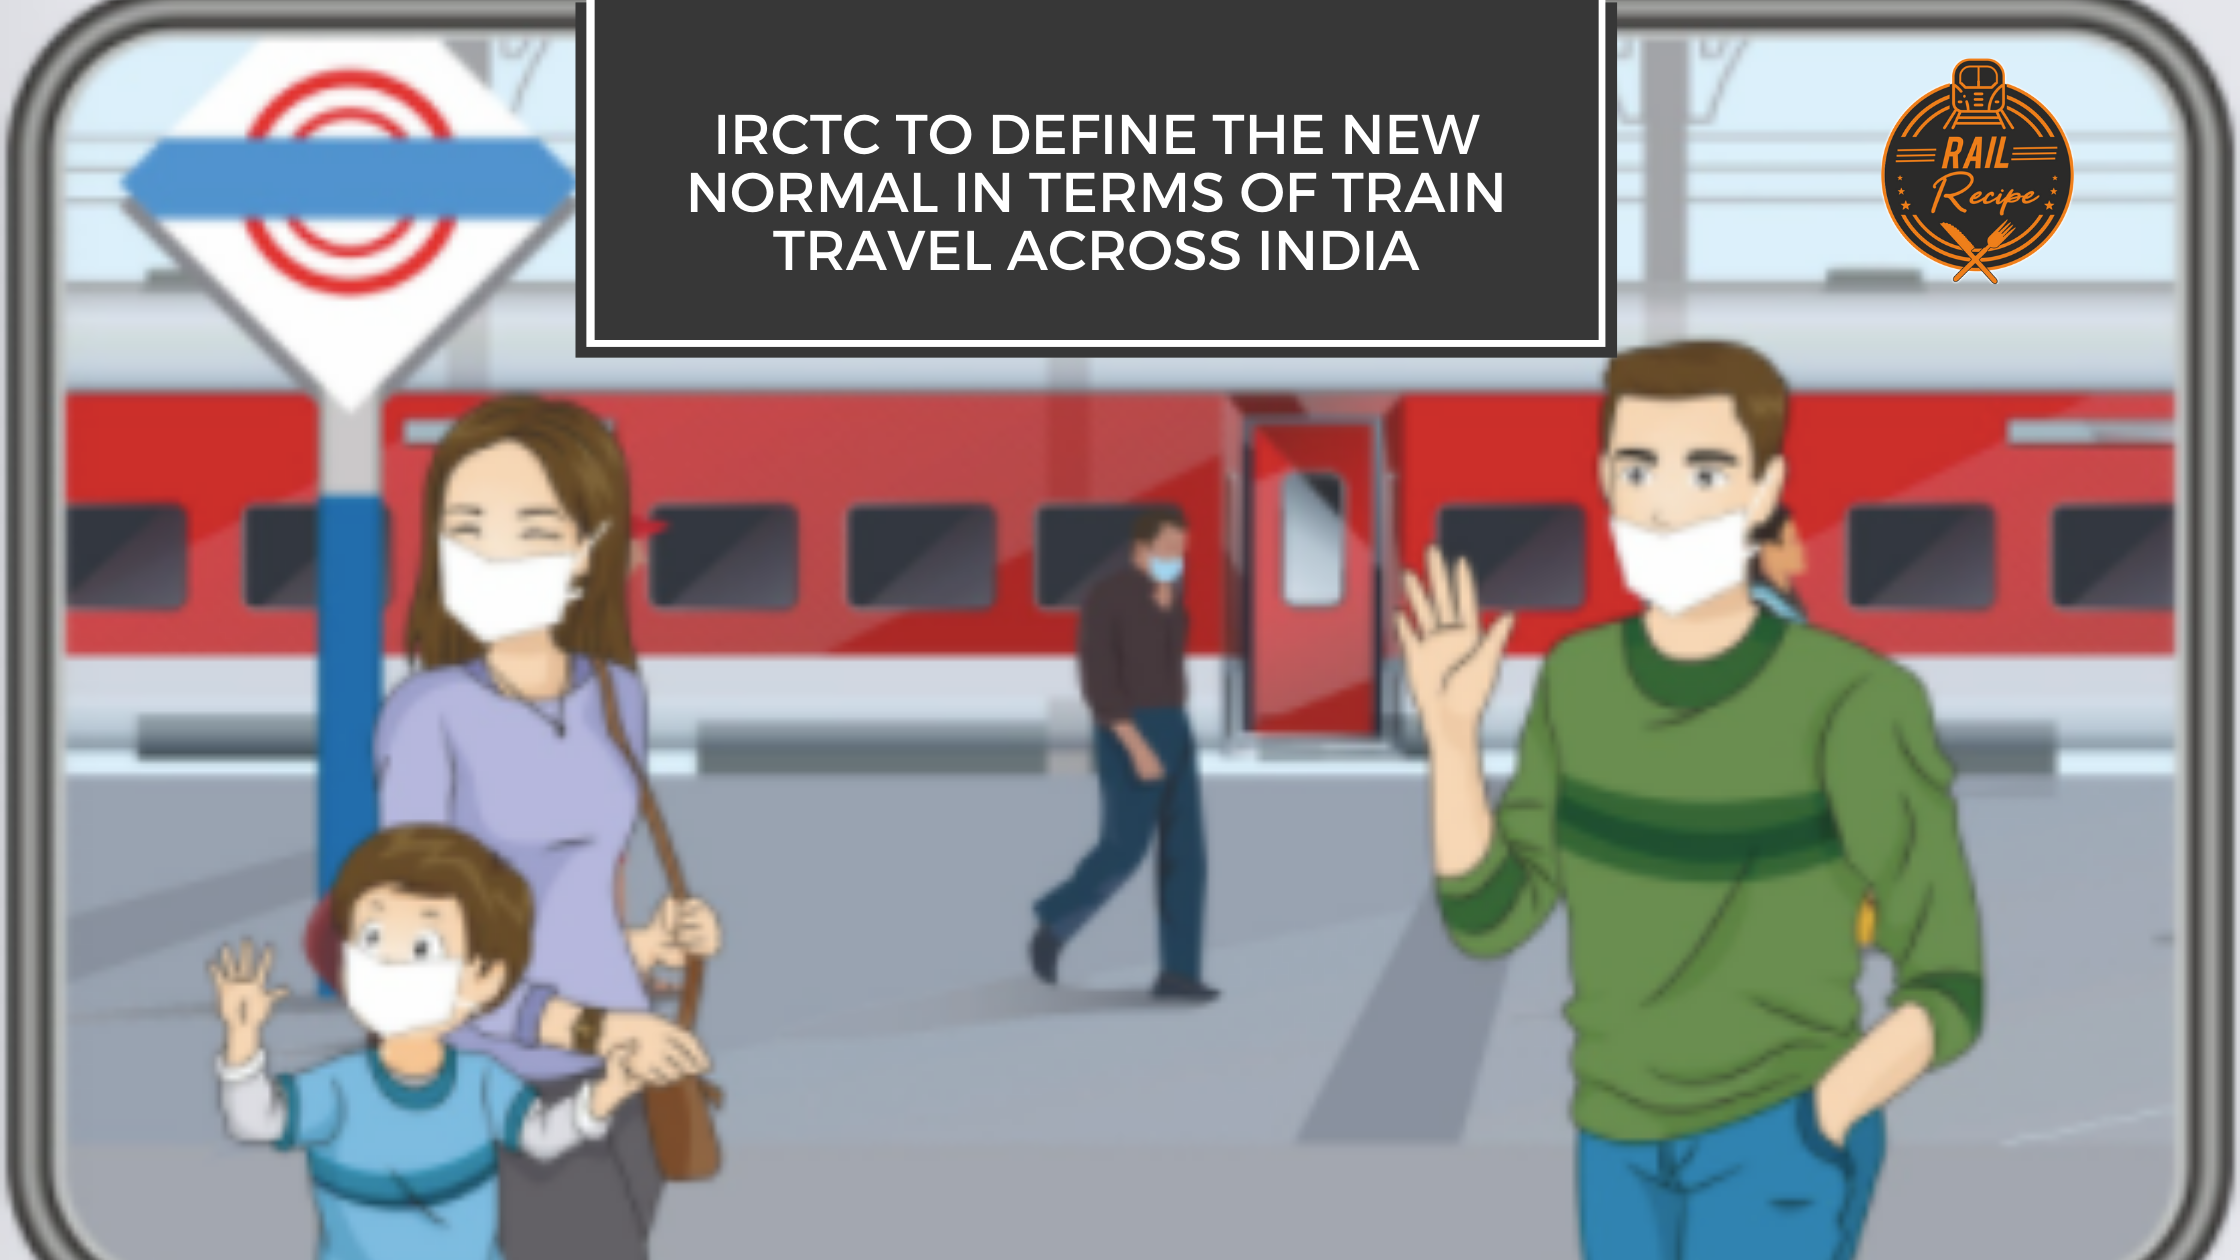 IRCTC to Define the New Normal In Terms of Train Travel Across India